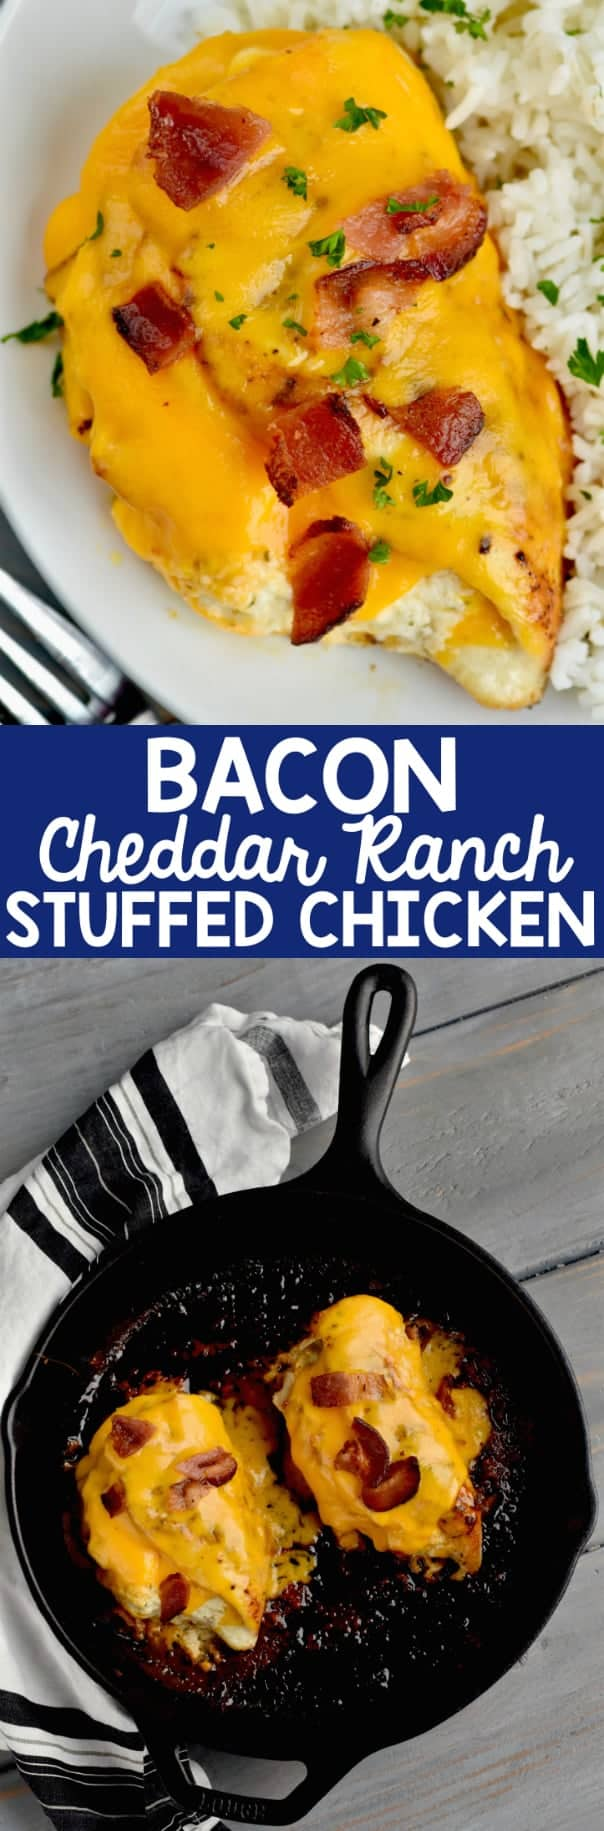 Two photos of the bacon Cheddar Ranch Stuffed Chicken Breast with a side of rice.